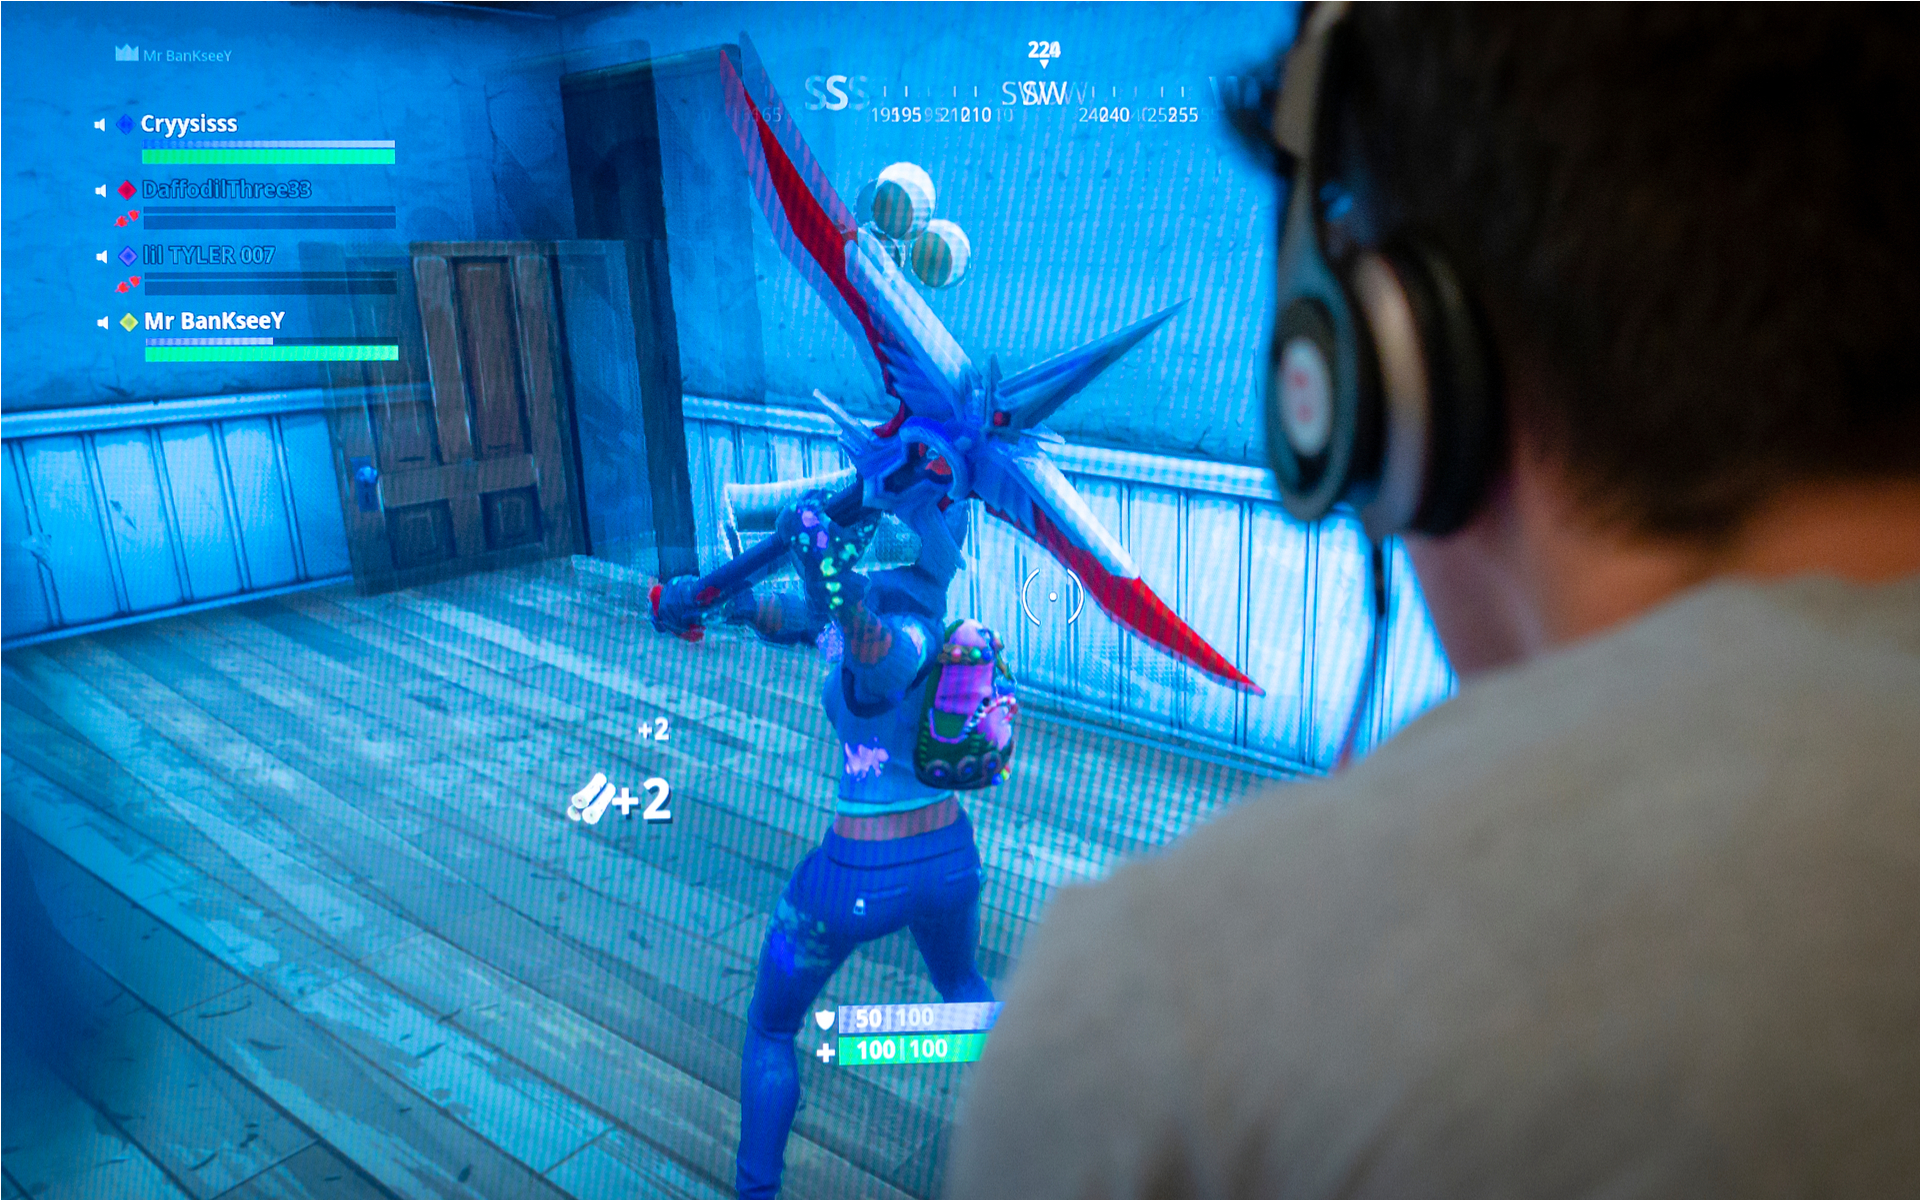 Fortnite vulnerabilities put millions of players at risk